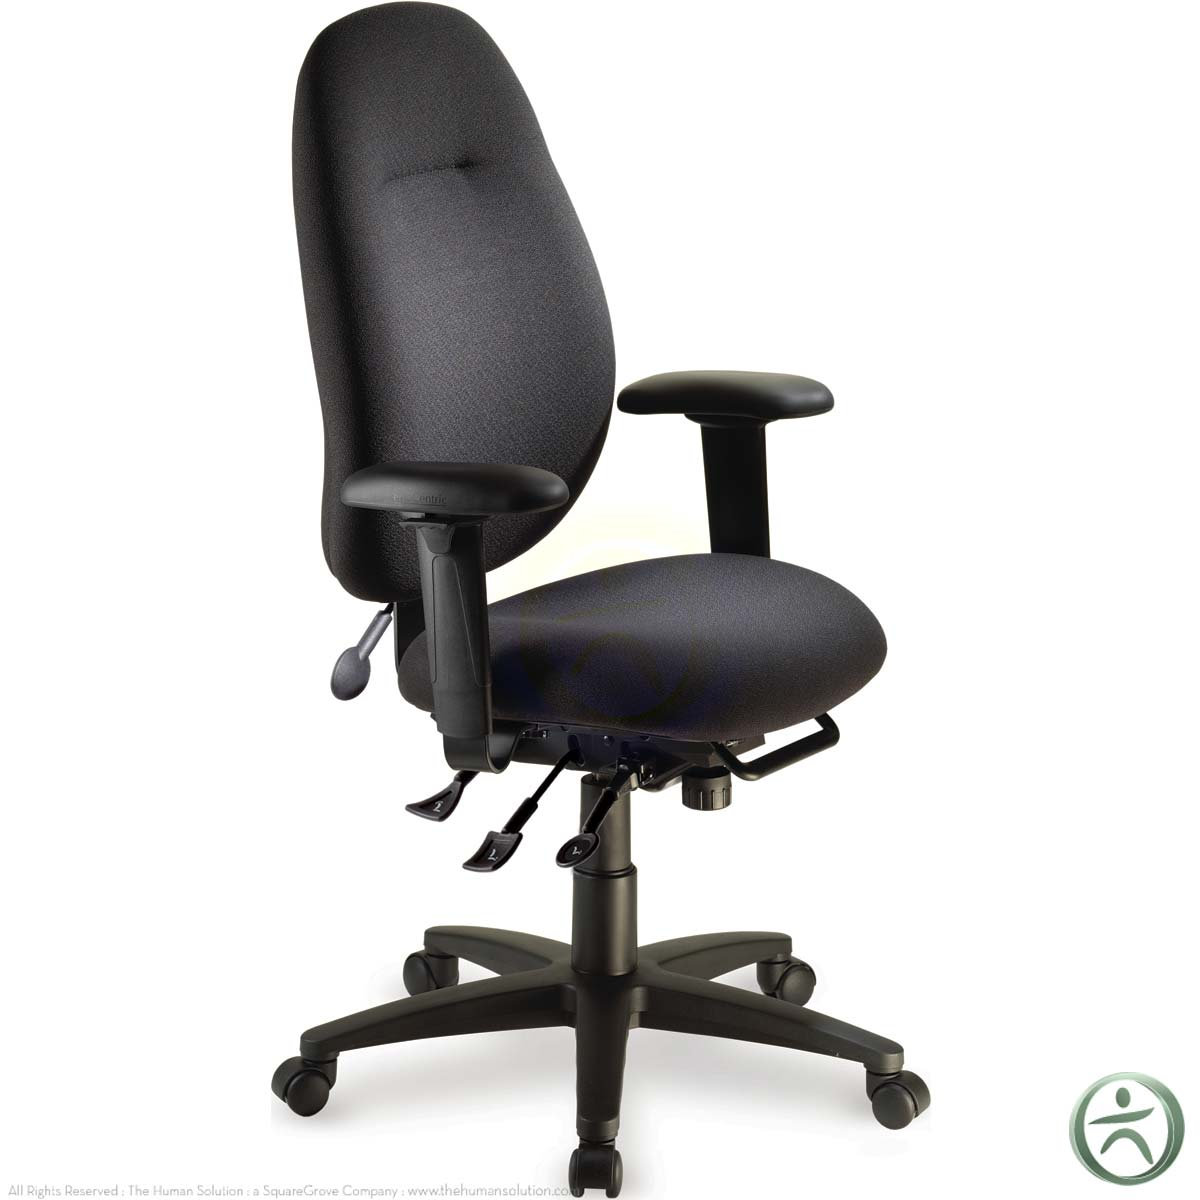 ergocentric ecentric ergonomic office chair shop. Black Bedroom Furniture Sets. Home Design Ideas